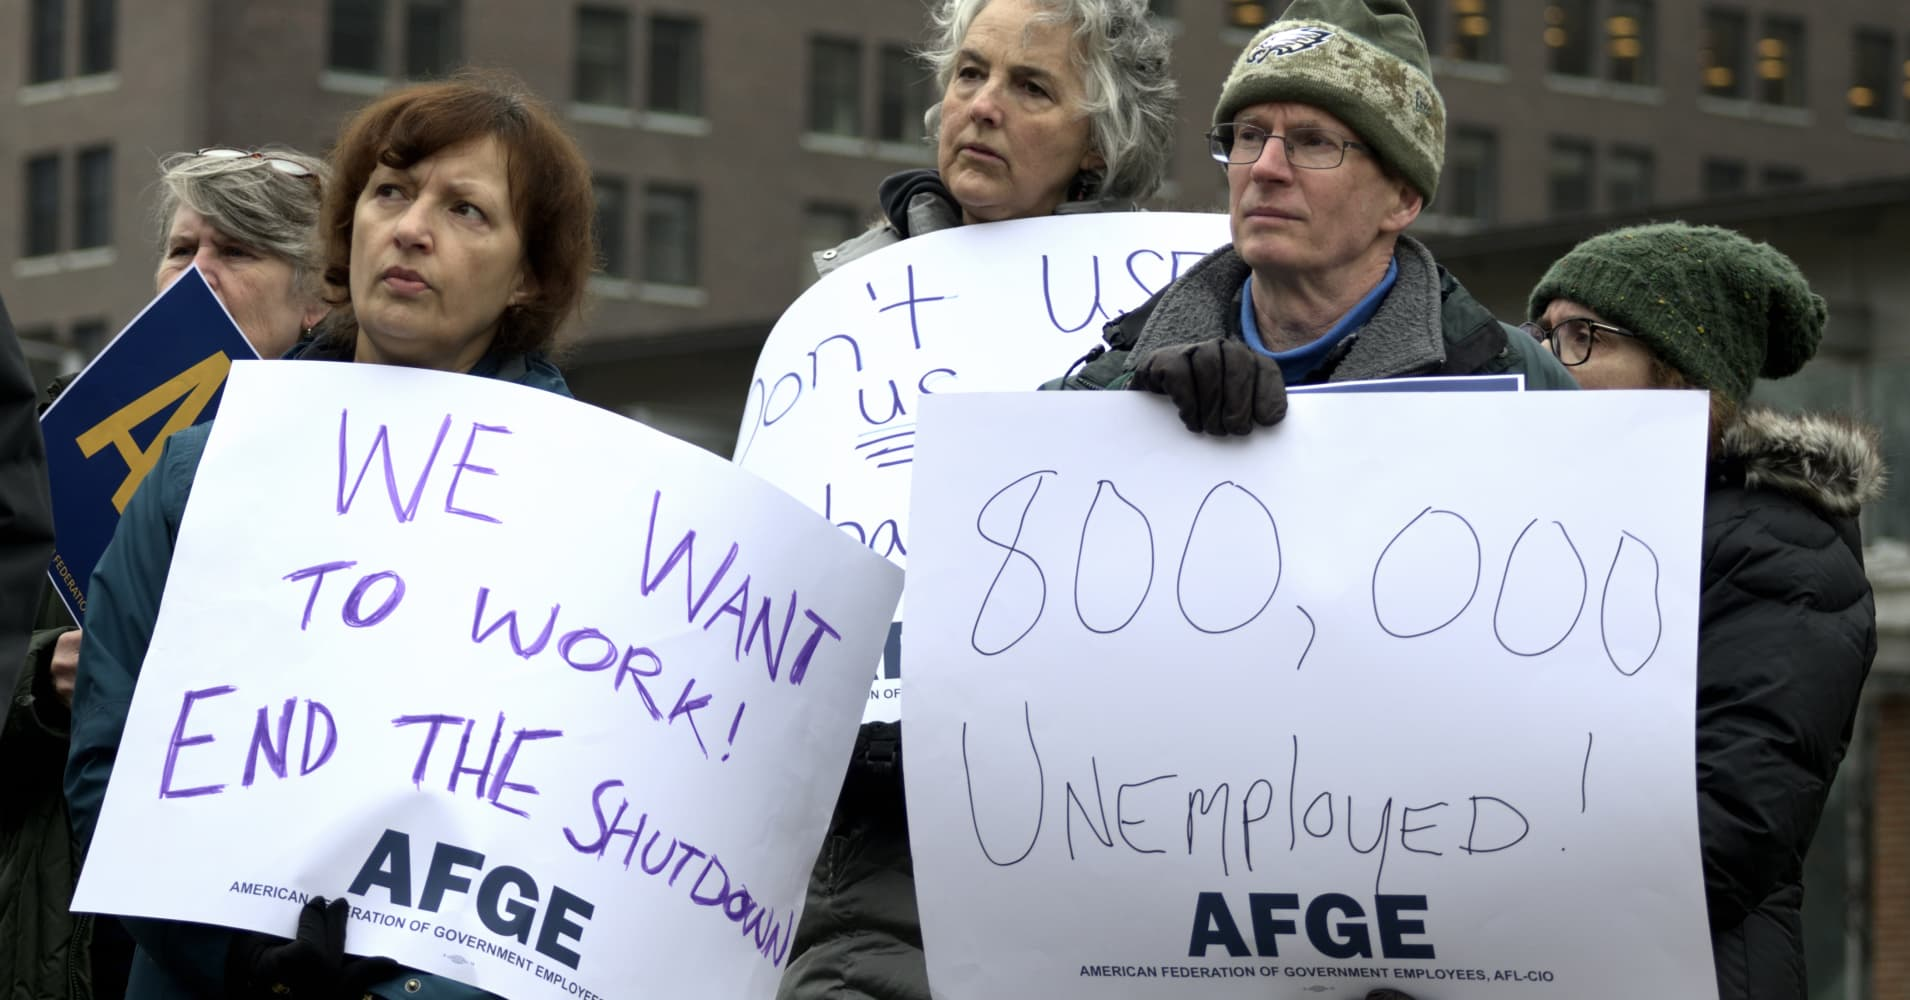 With no end in sight for the shutdown, thousands of federal workers file for unemployment